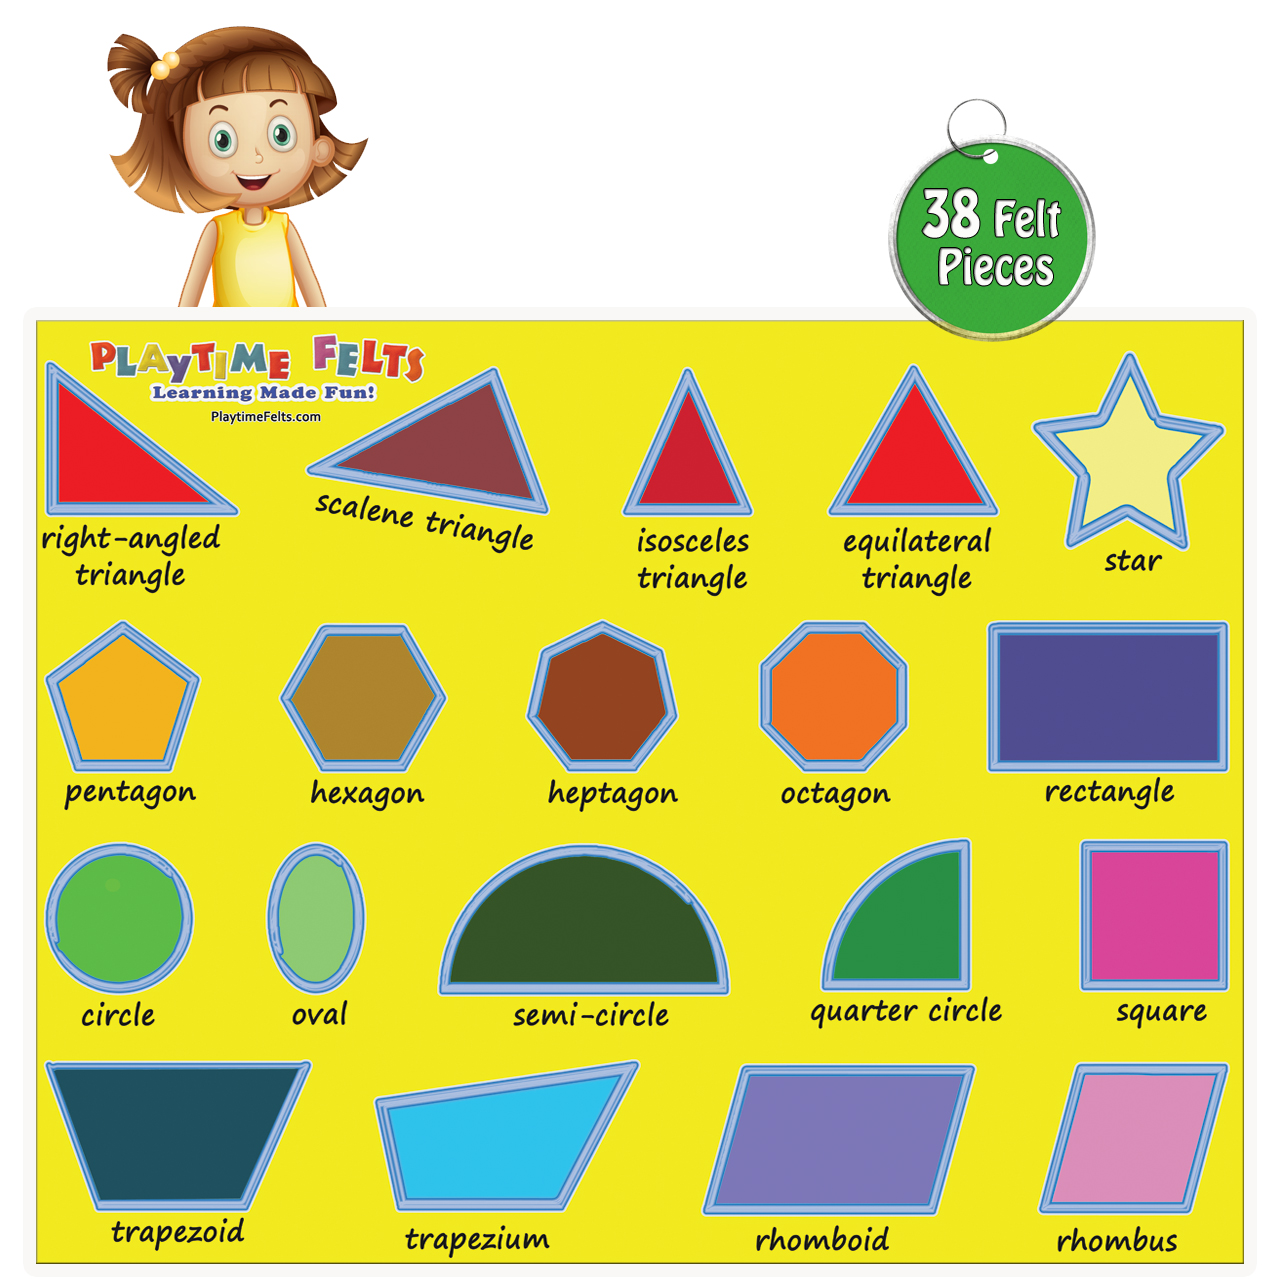 Worksheet Names Of Shapes With Pictures fun felt shapes with real big names uncut